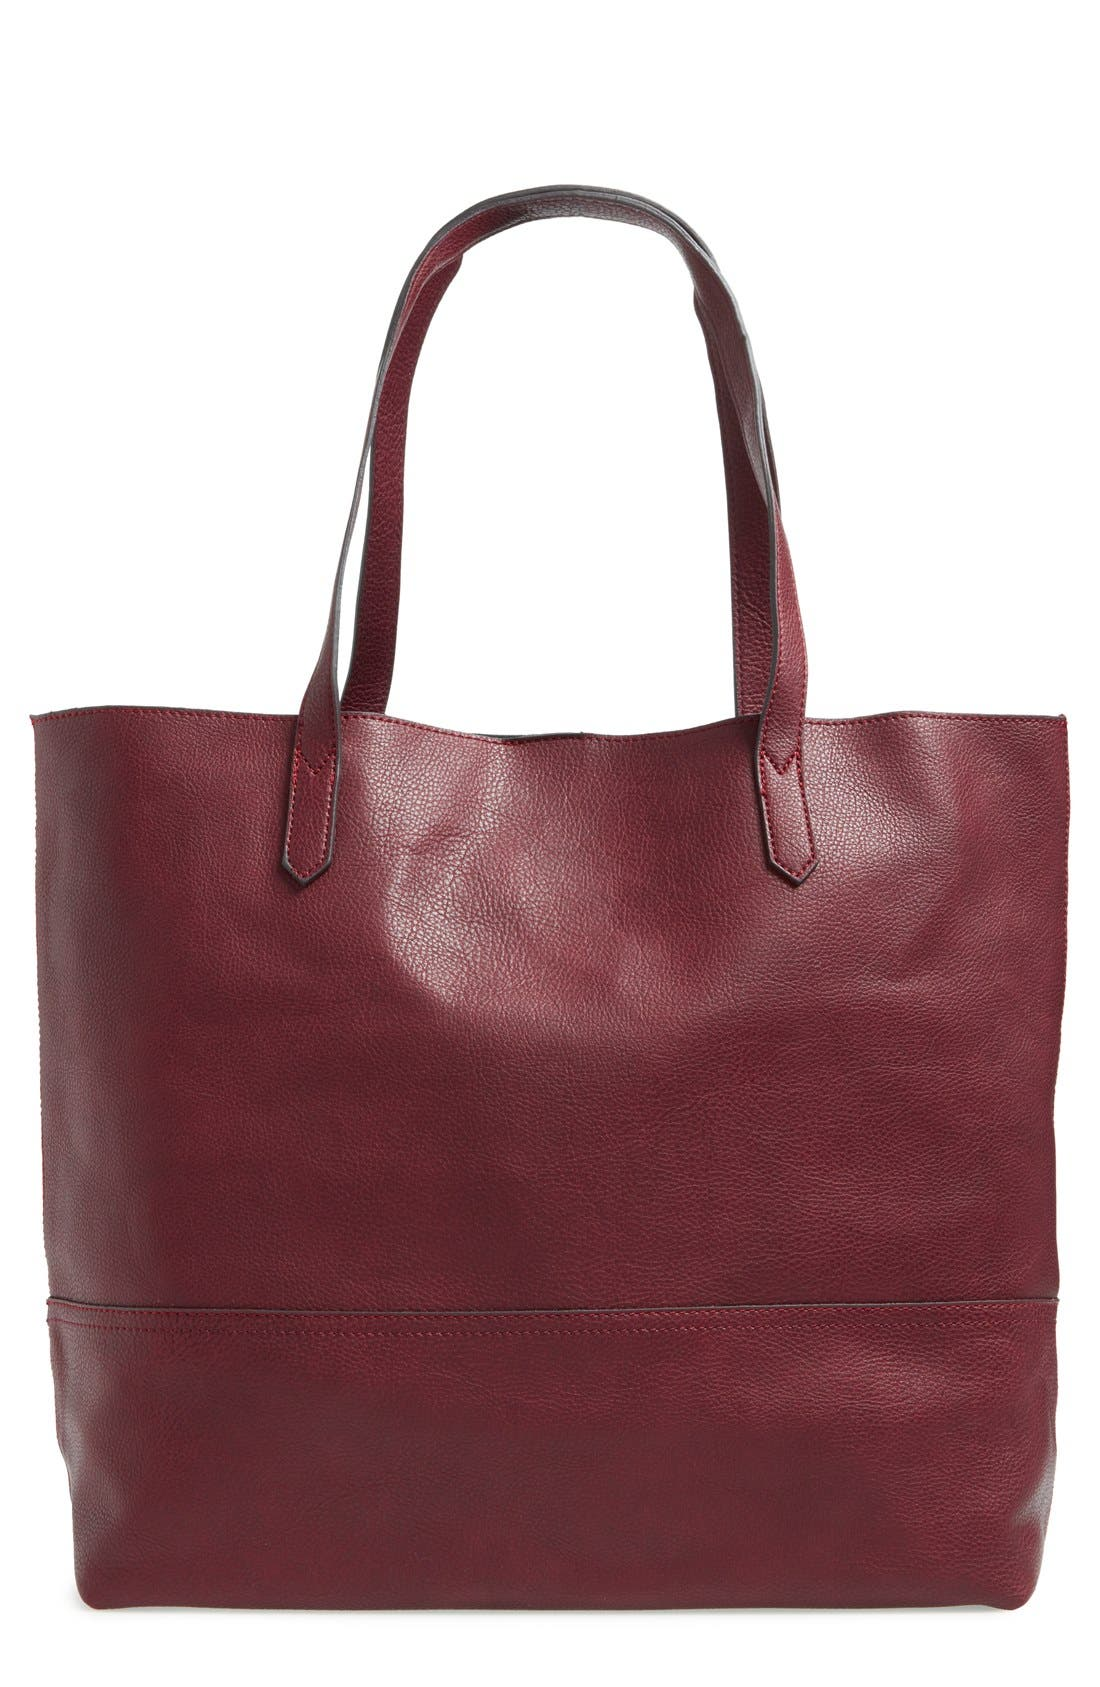 Dawson Oversize Faux Leather Shopper,                             Main thumbnail 1, color,                             Oxblood